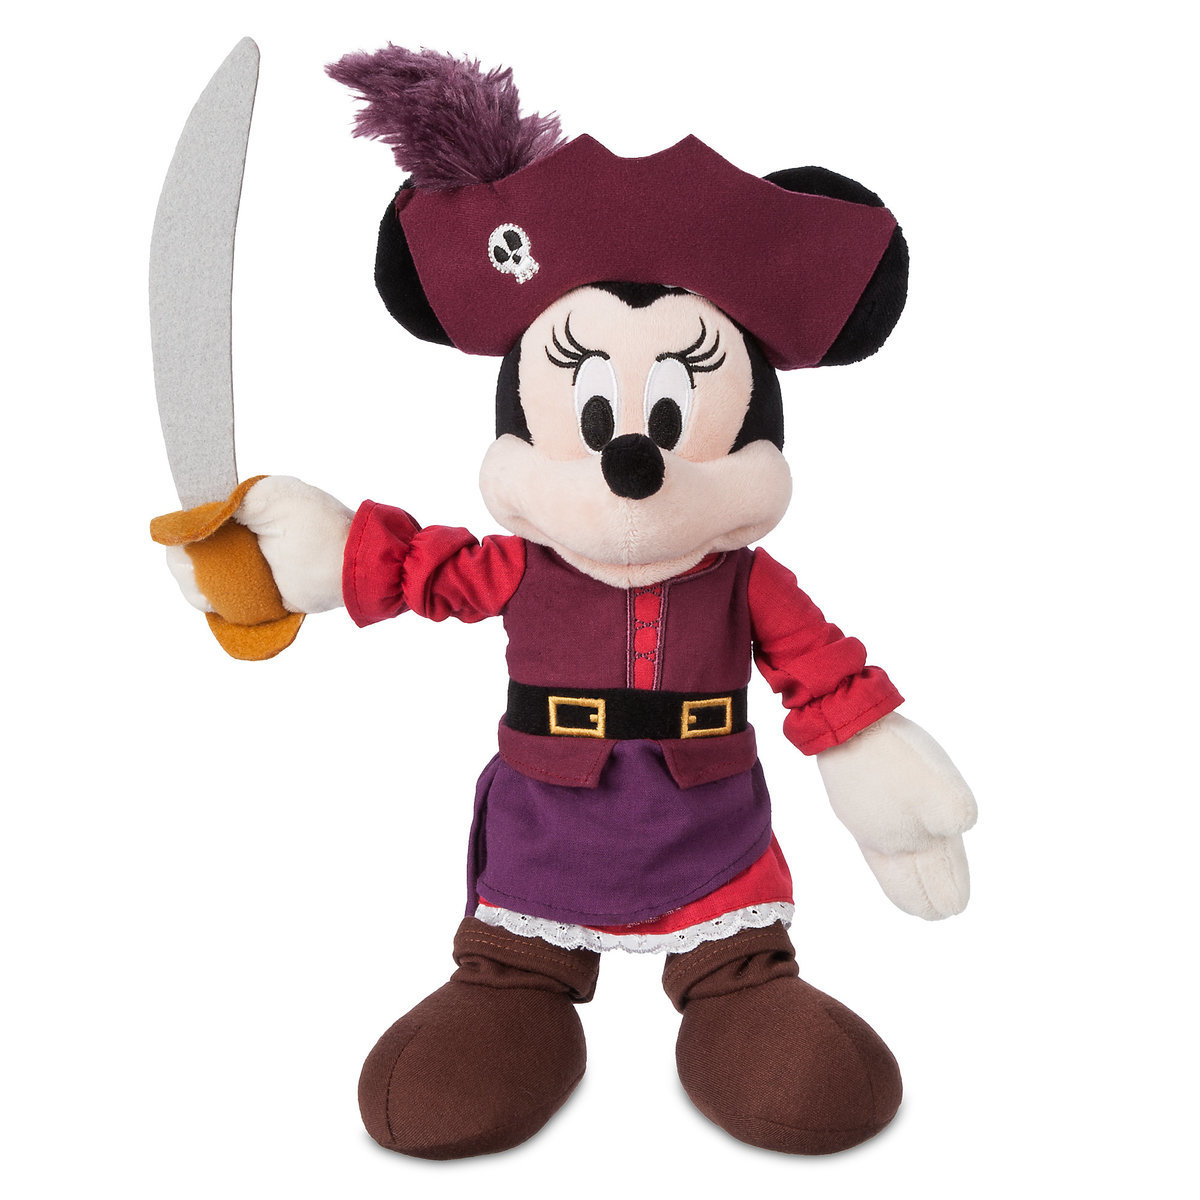 993b7e67fad06 Product Image of Minnie Mouse Plush - Pirates of the Caribbean - Small - 12'